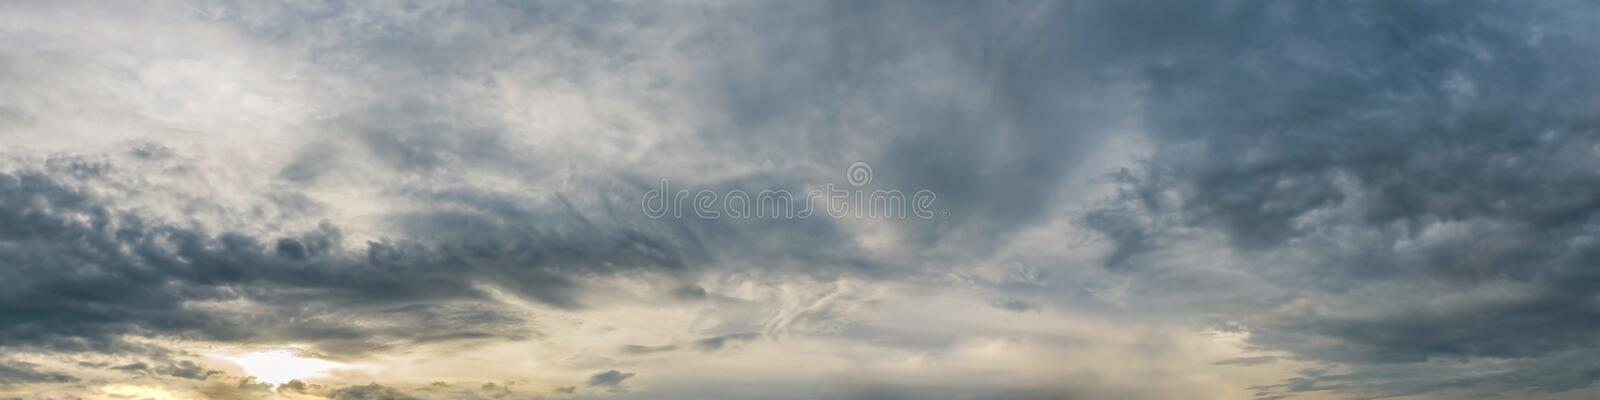 Dramatic panorama sky with cloud on sunrise and sunset time. Panoramic image royalty free stock images